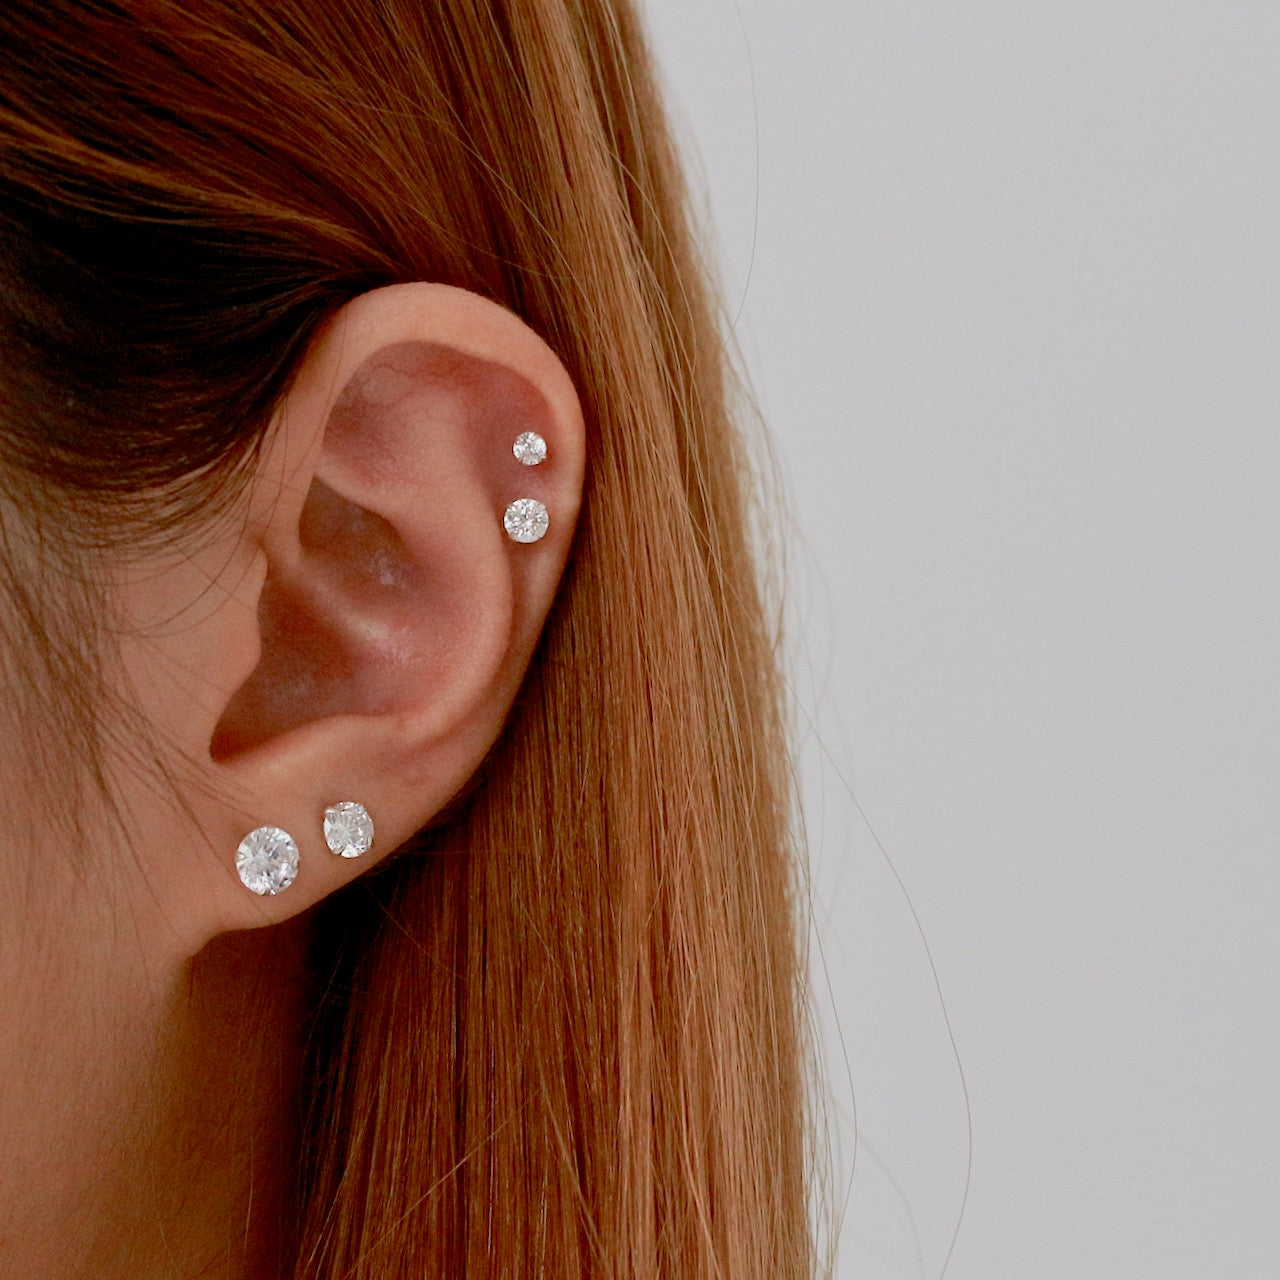 Sparkly Petit Stud Earrings 3mm